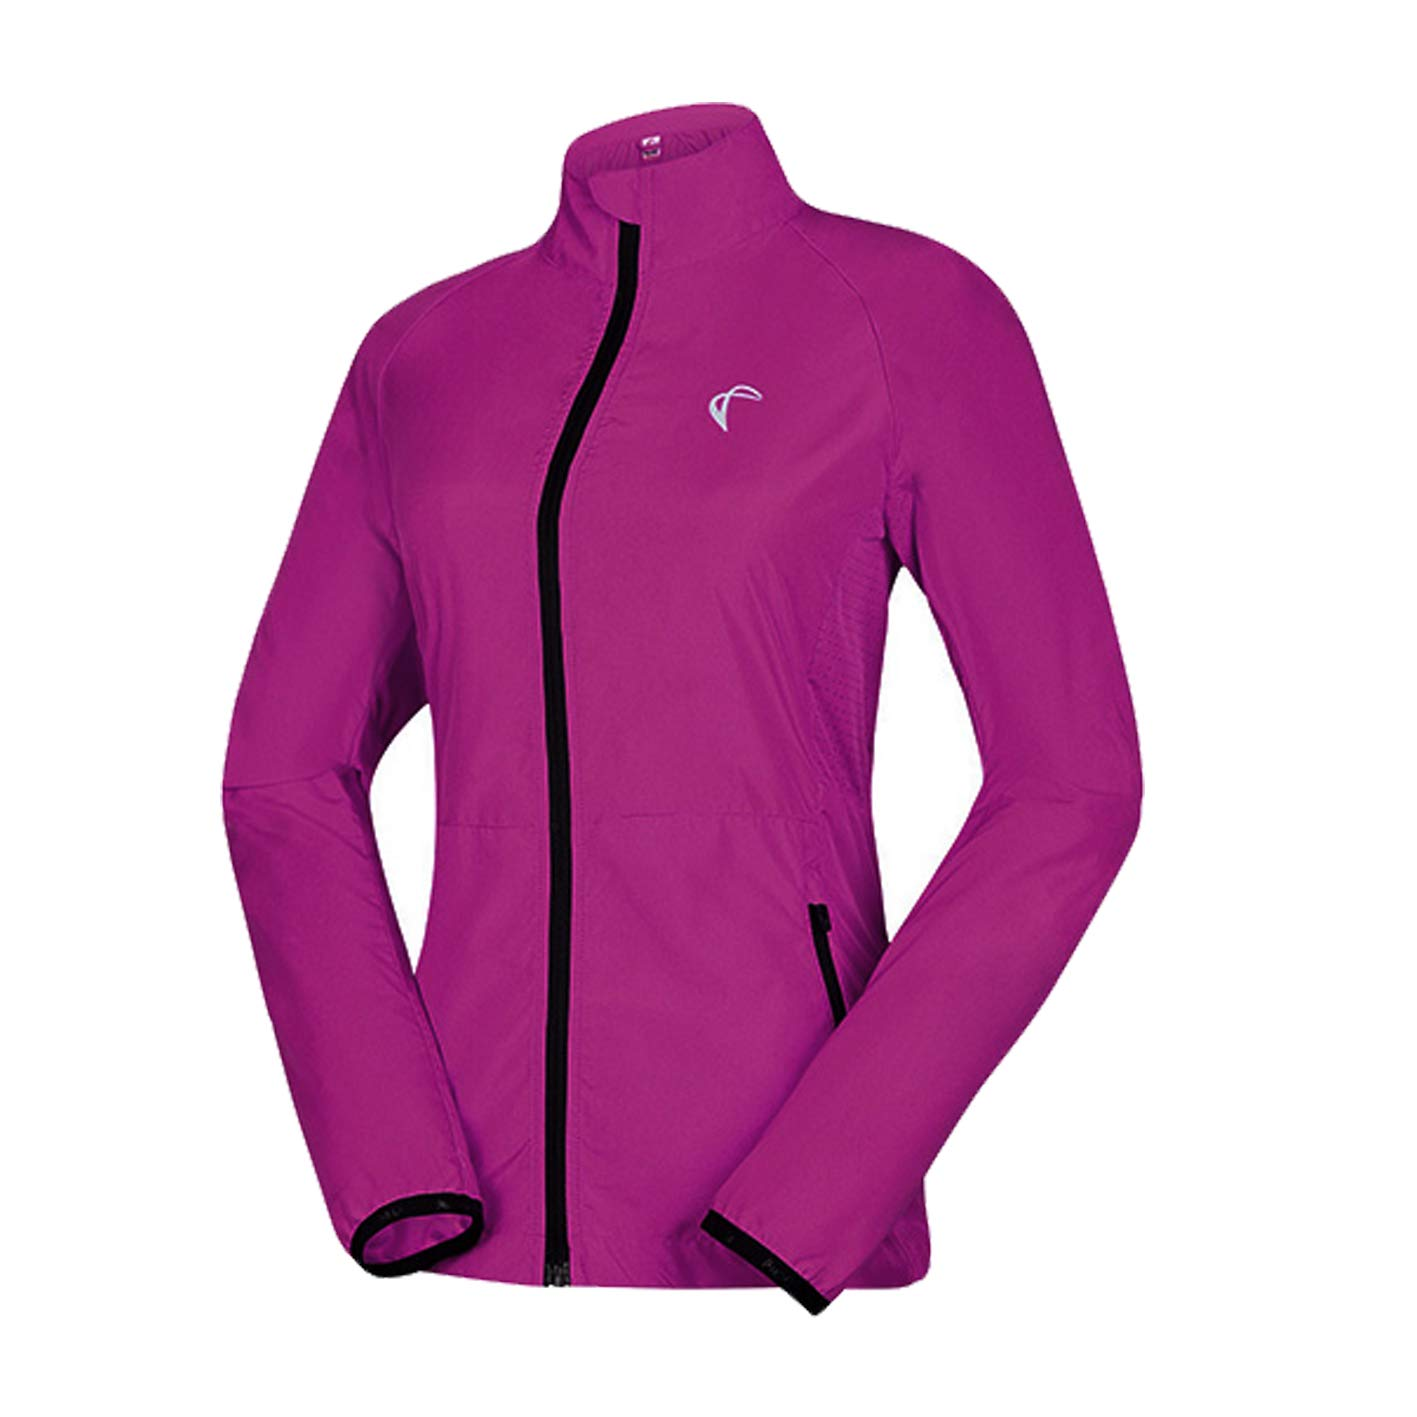 J.CARP Women's Packable Windbreaker Jacket, Super Lightweight and Visible, Outdoor Active Cycling Running Skin Coat, Purple L by J.CARP